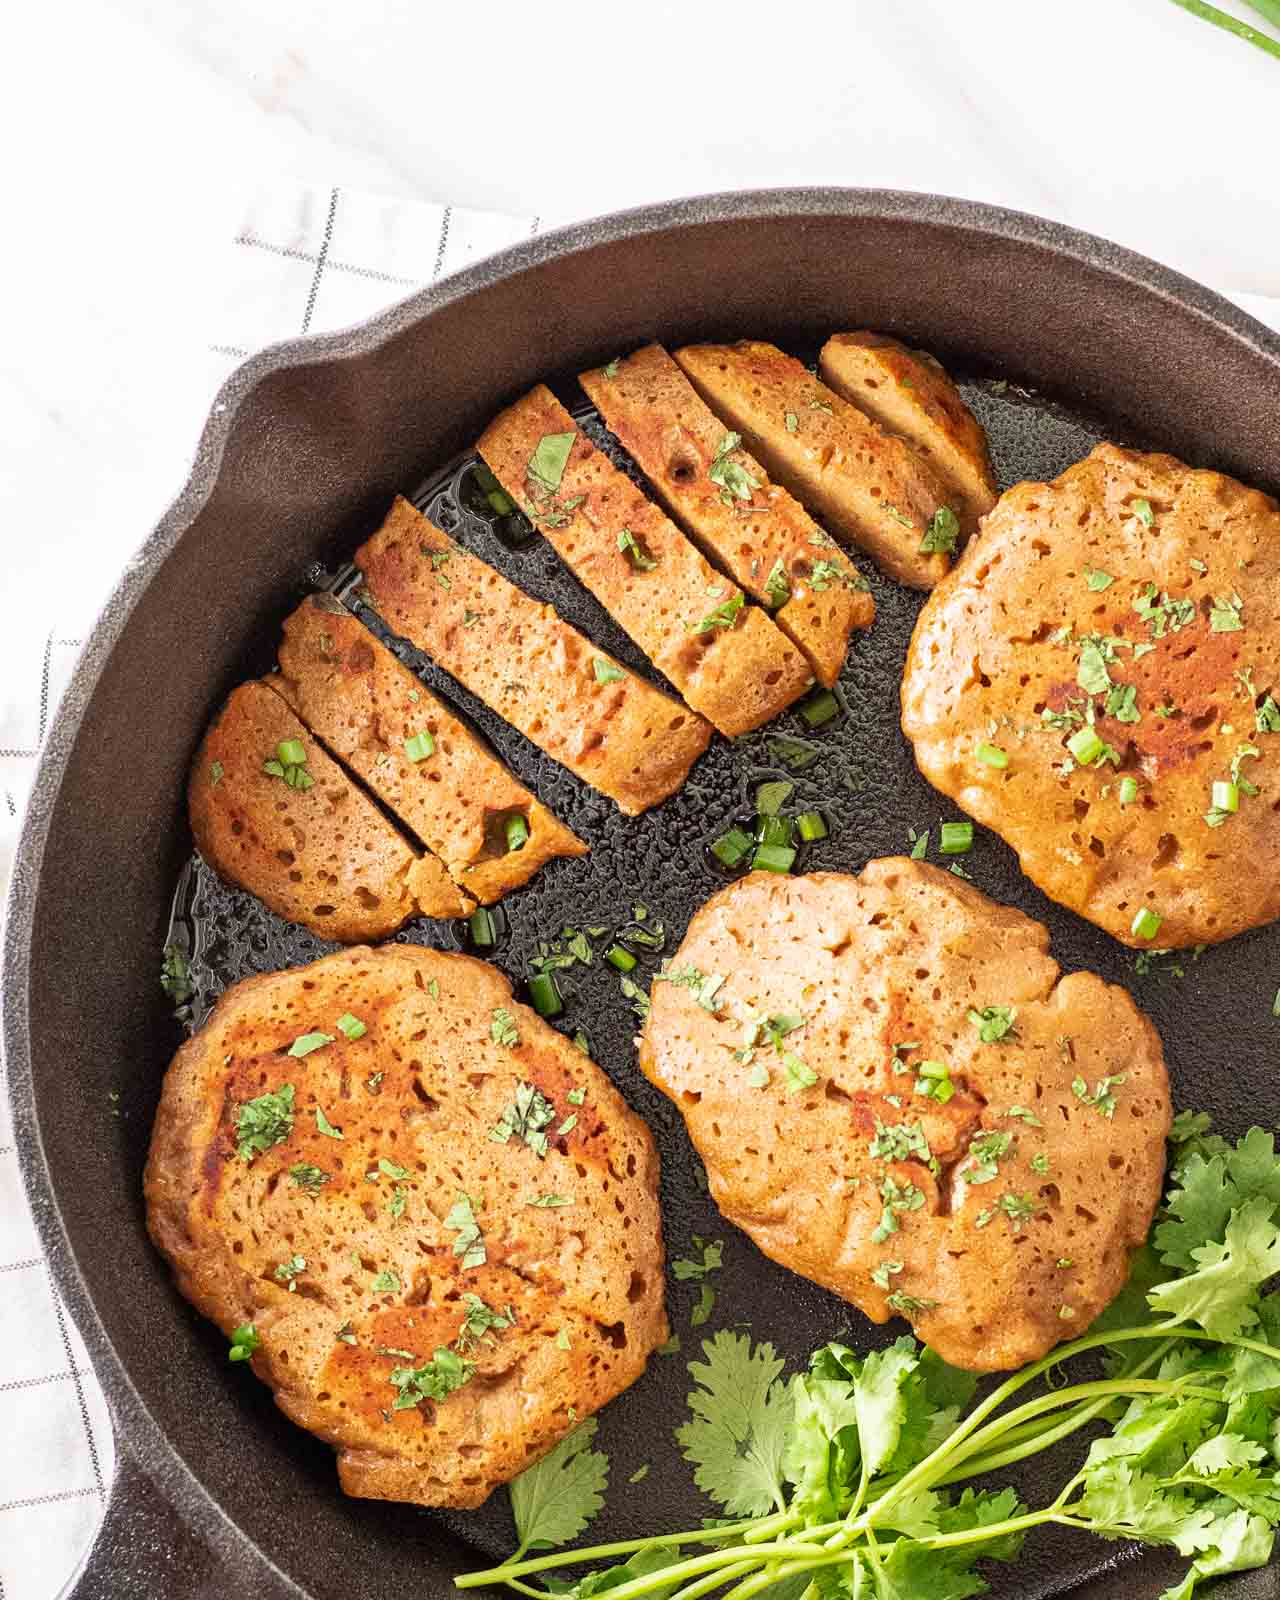 A few breasts of seitan chicken in a black pan topped with chopped cilantro.